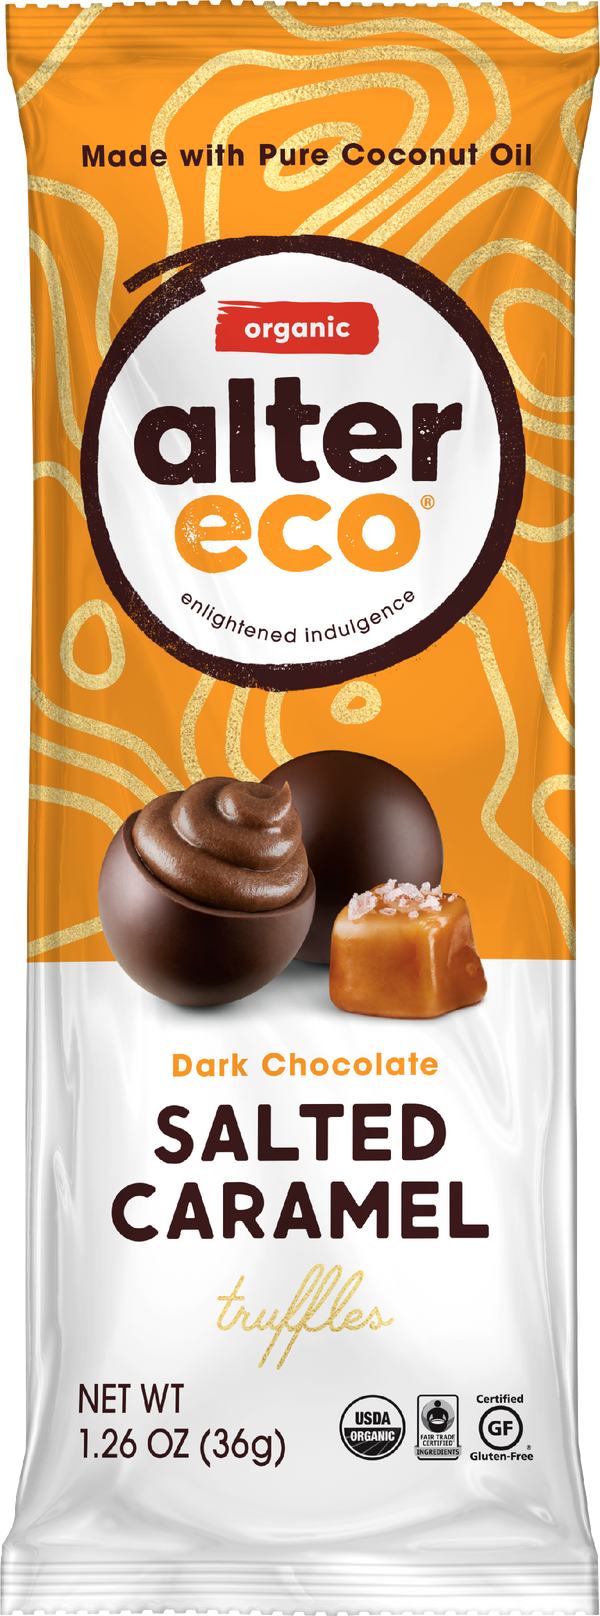 Salted Caramel Truffles (3 count) Package